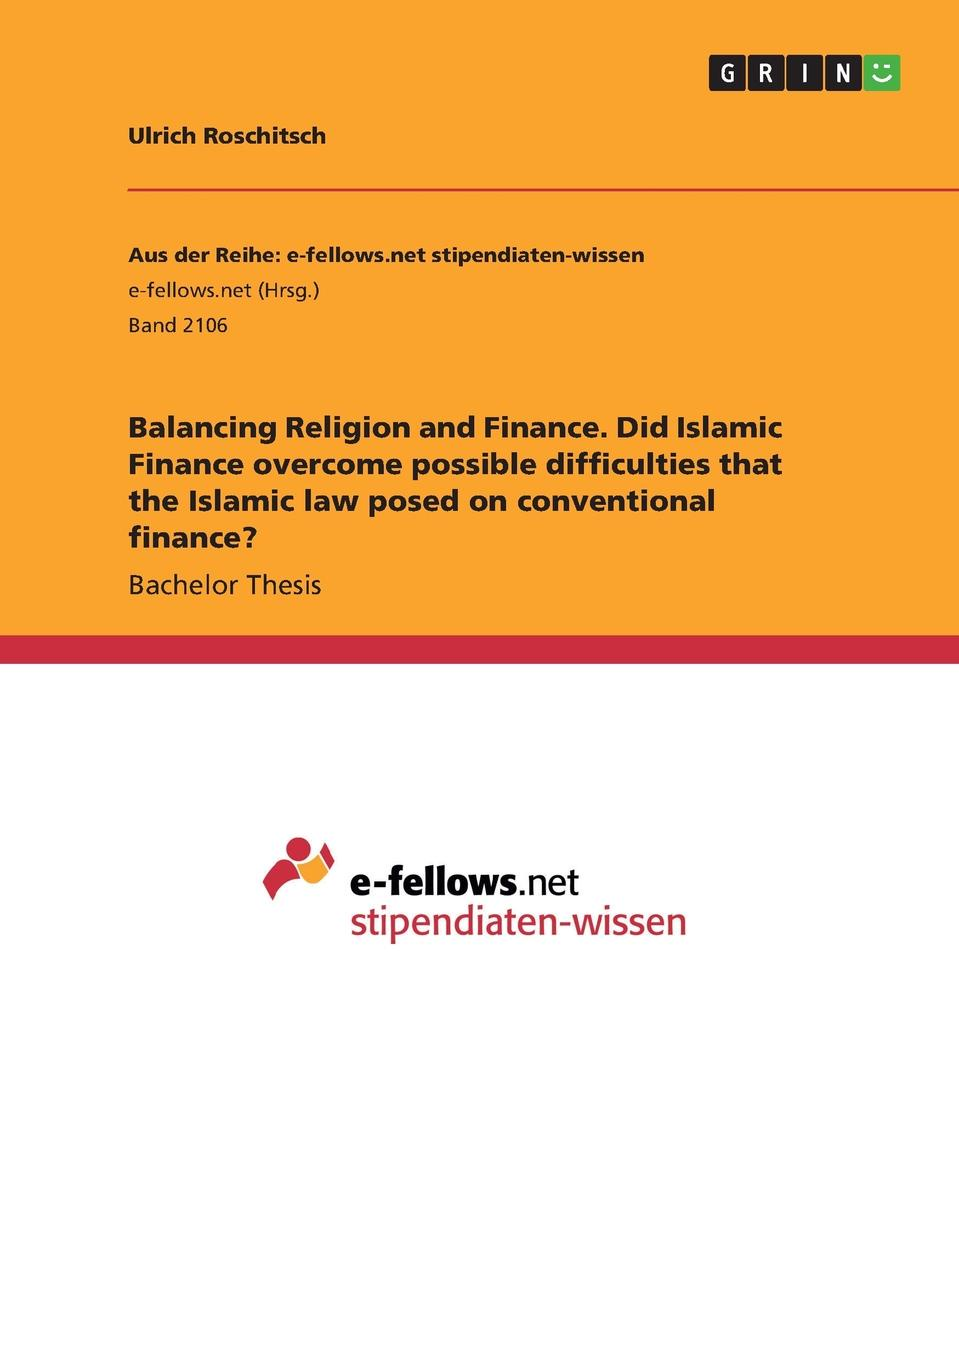 Ulrich Roschitsch Balancing Religion and Finance. Did Islamic Finance overcome possible difficulties that the Islamic law posed on conventional finance. islamic muslim culture surah arabic bismillah allah vinyl stickers